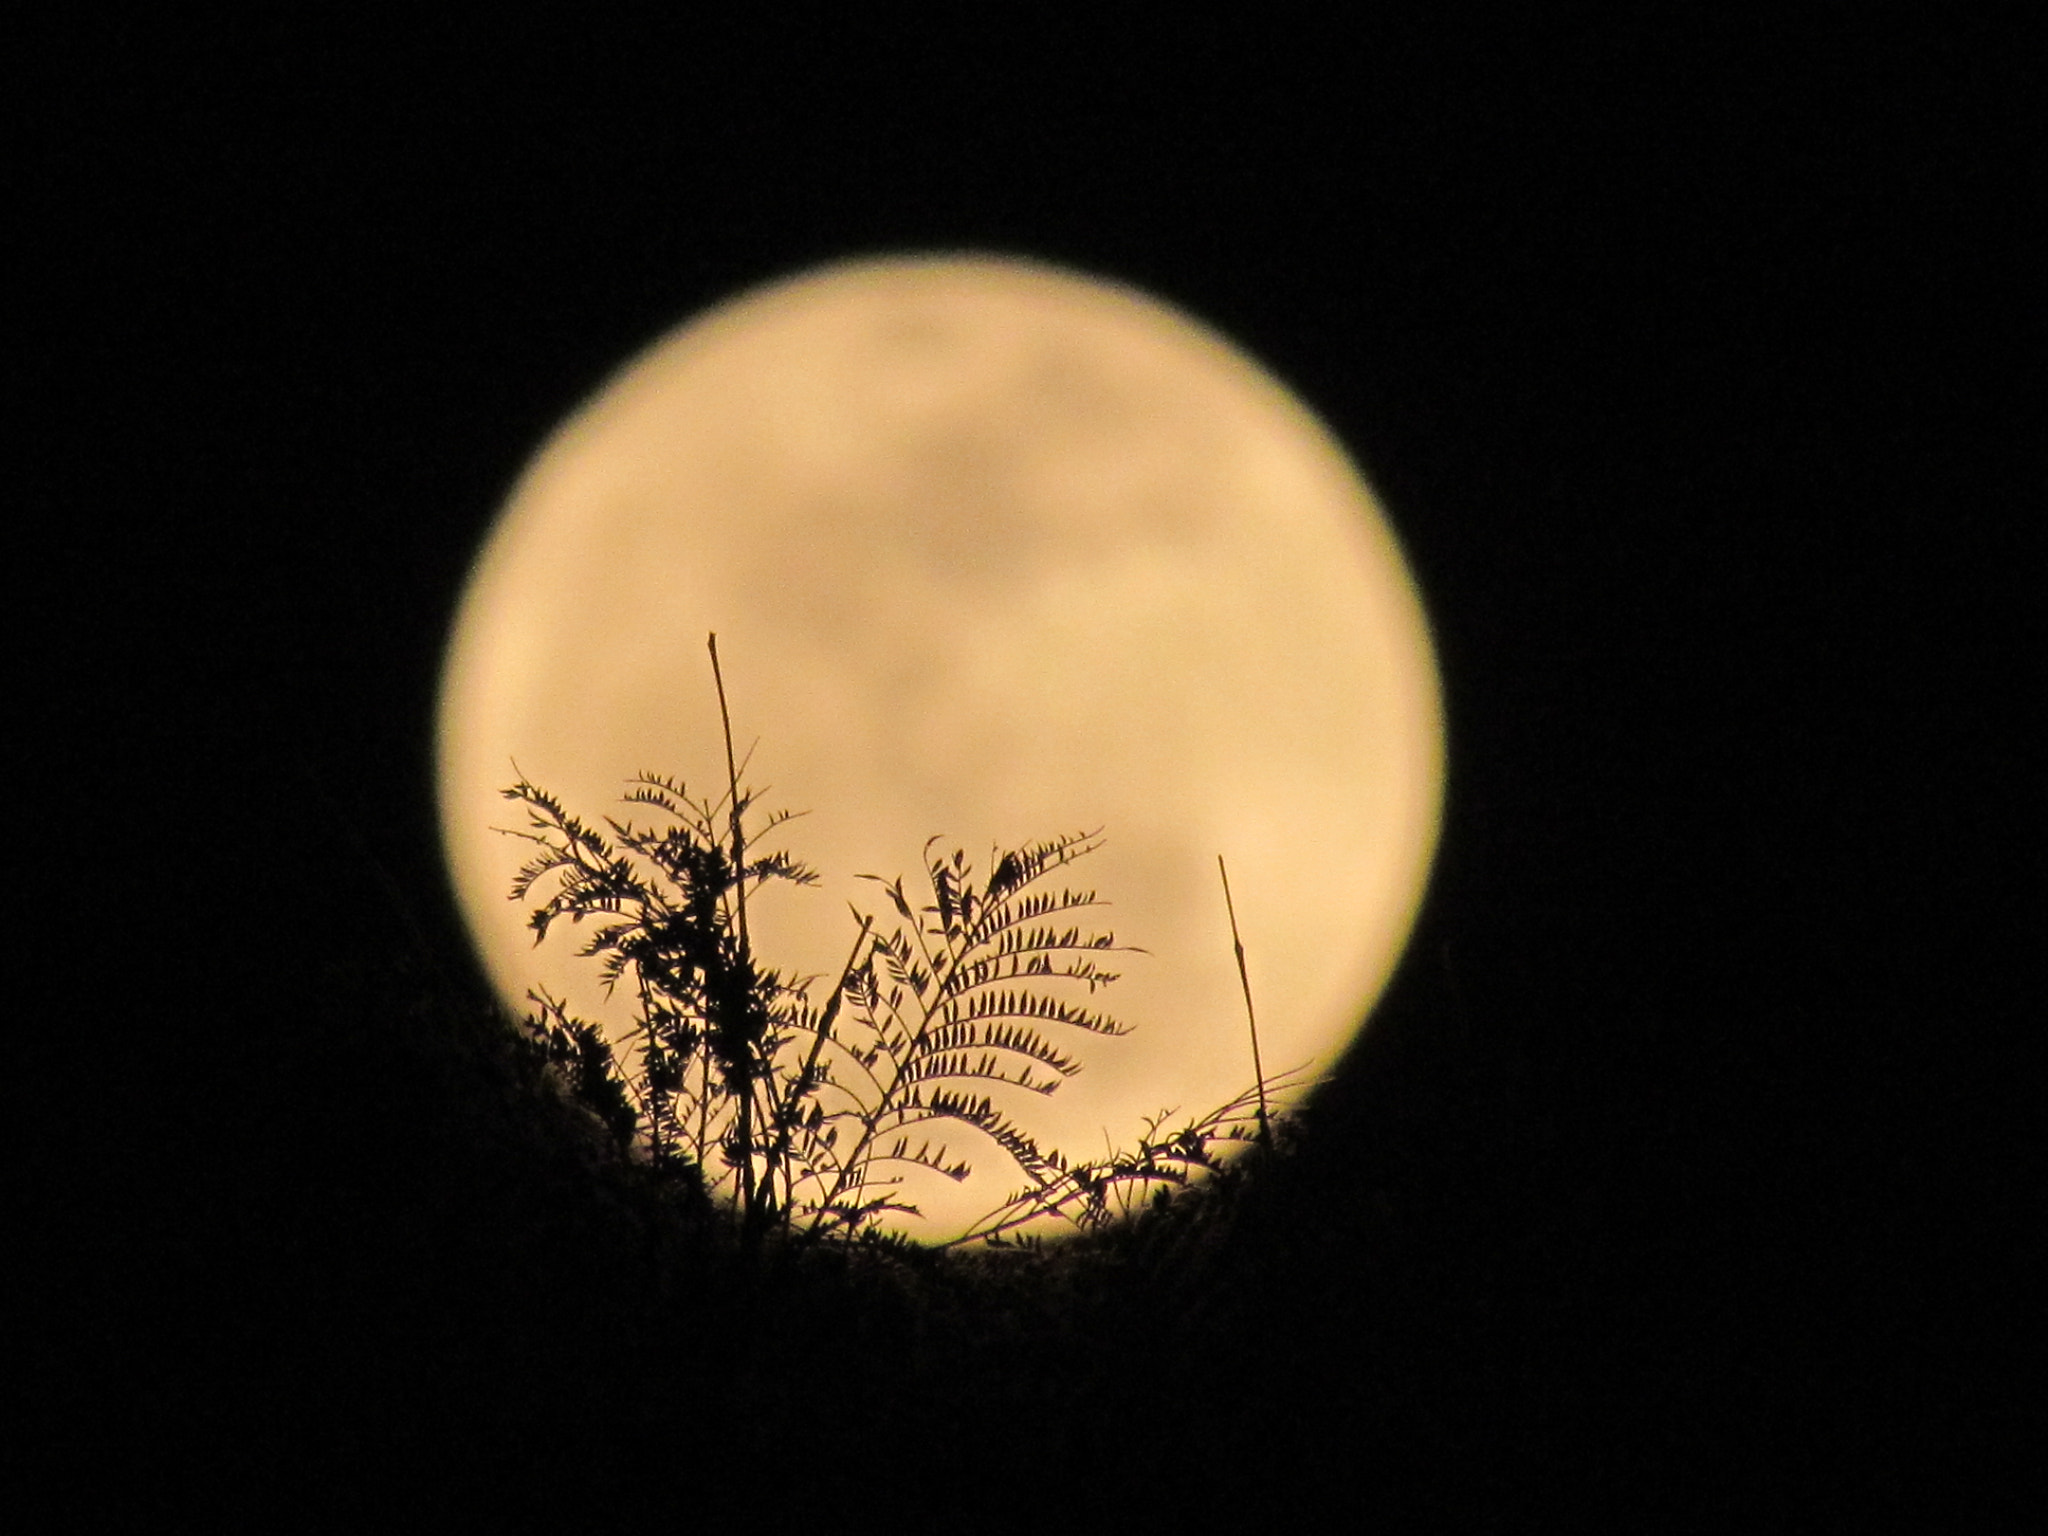 Photograph leaves and moon behind by Kim Kestenboum on 500px